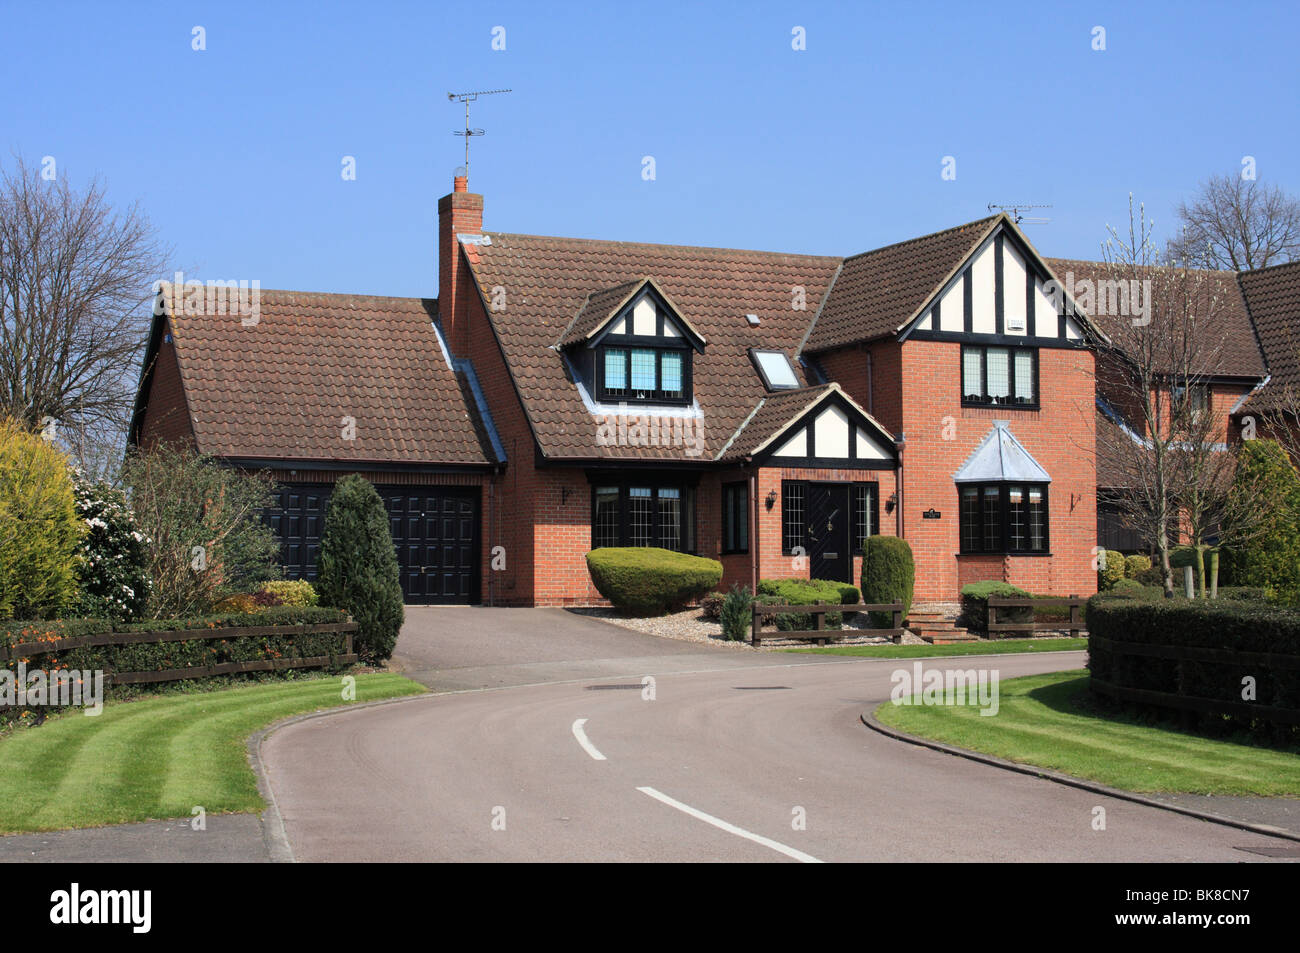 A modern detached house in the u k stock photo royalty for Modern house uk